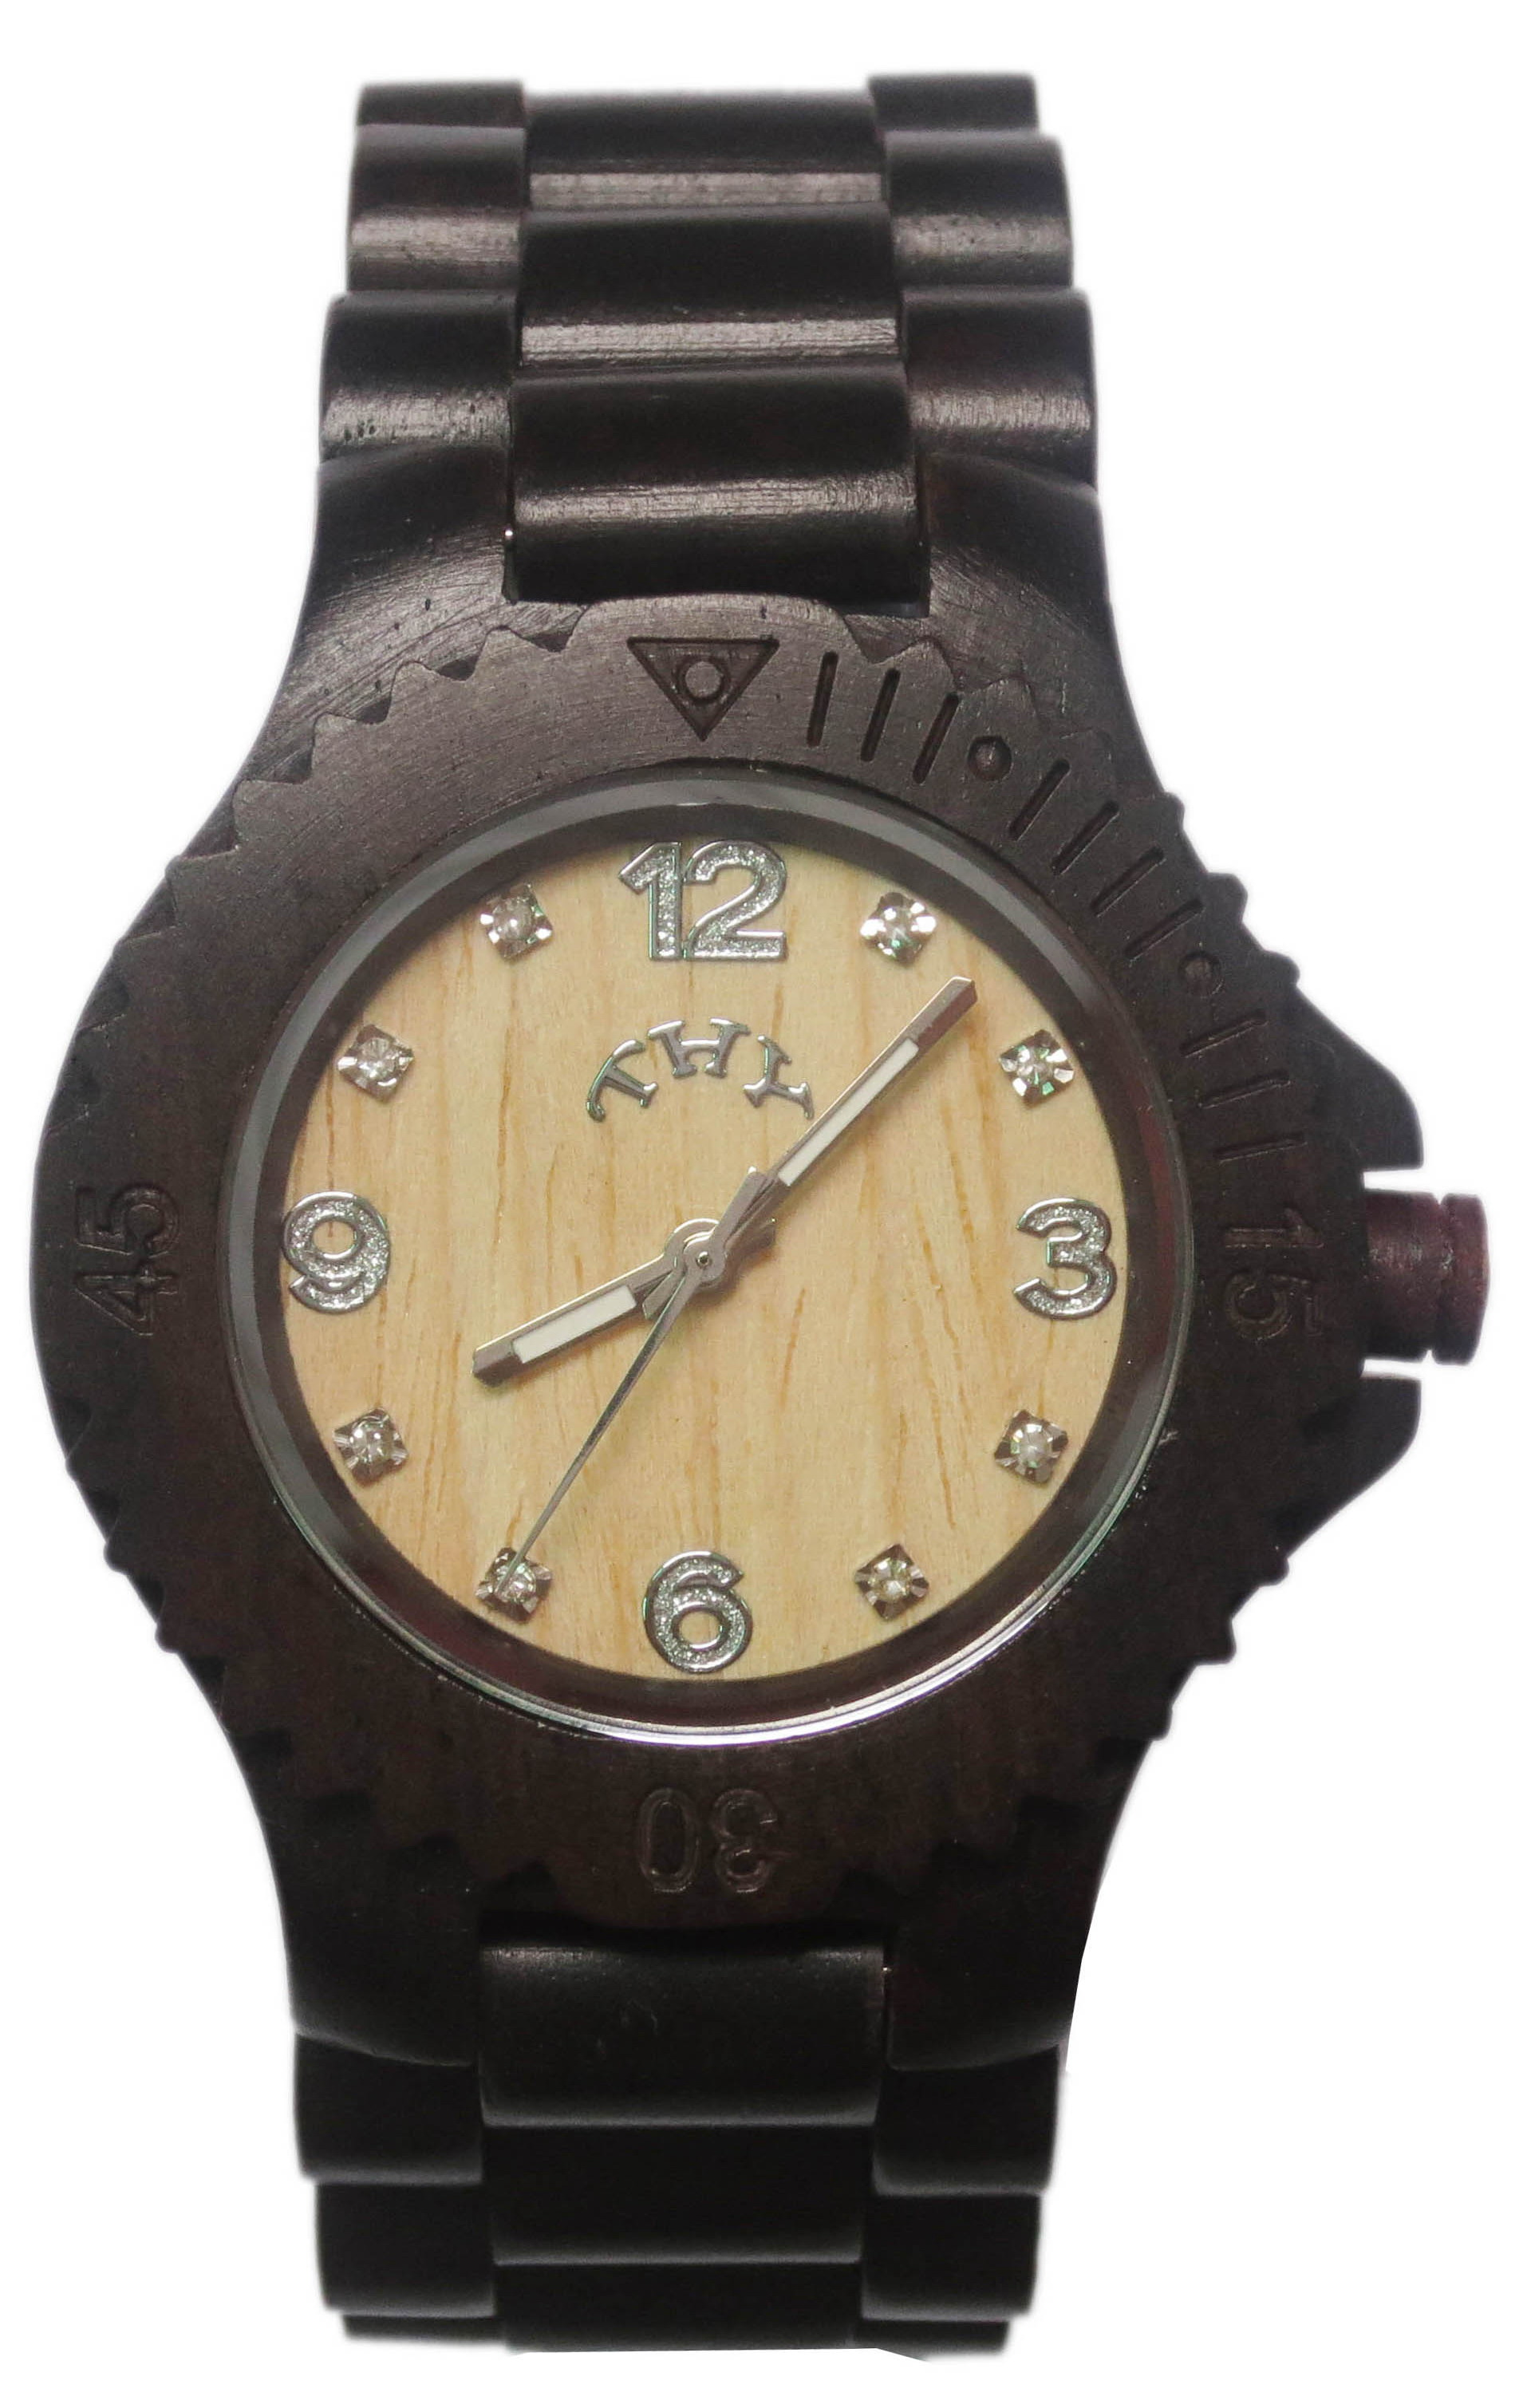 Mens Black Round White Dial Wooden Watches with 40 Mm Size W00019